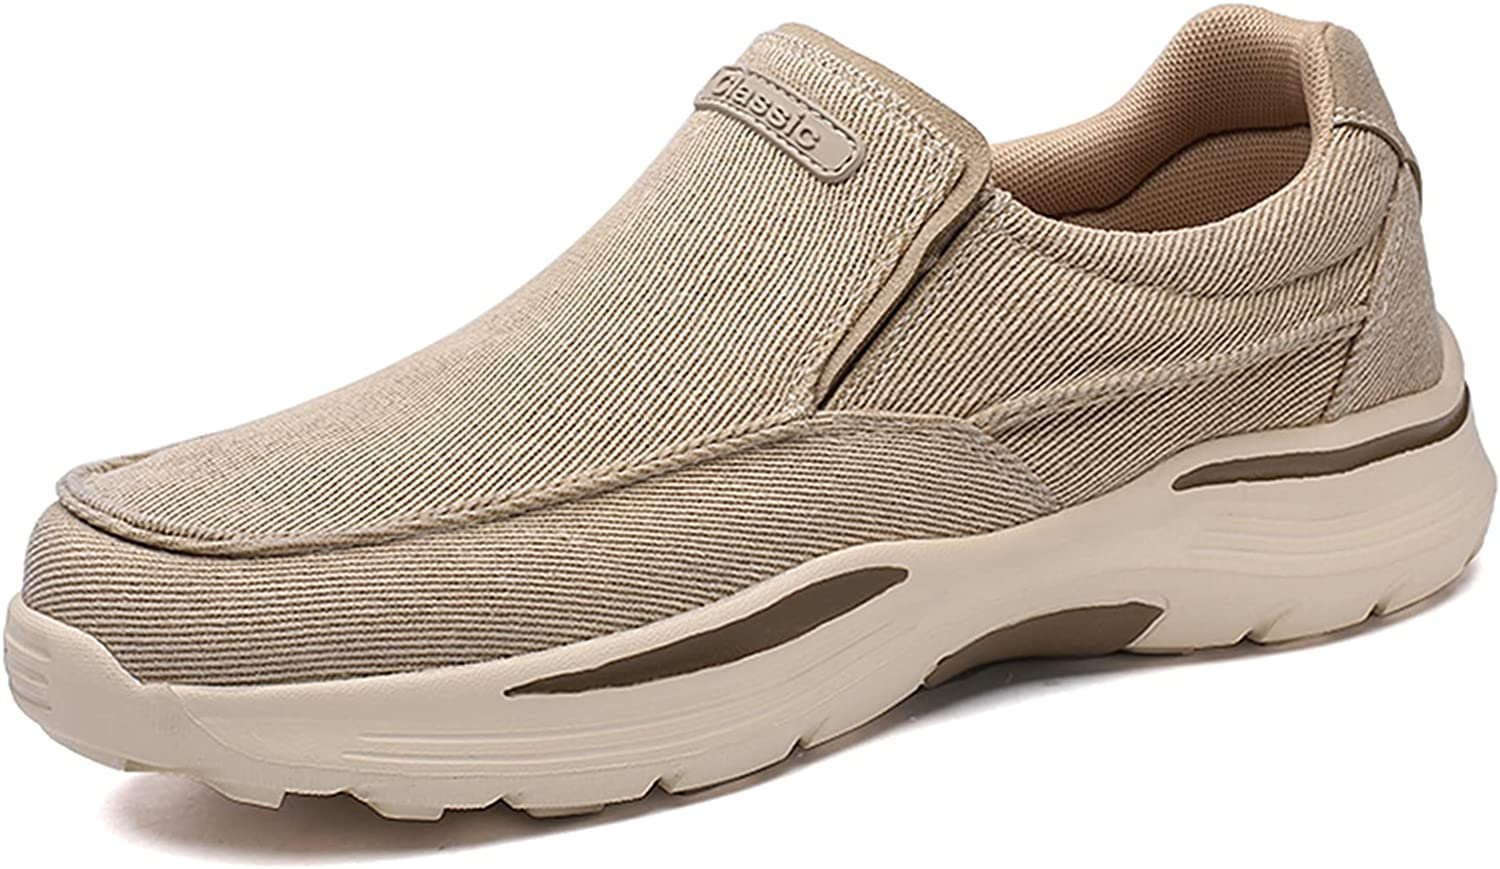 Very popular Loafers-for Men Slip-On Casual Shoes Wal Lightweight Canvas Boat Year-end gift